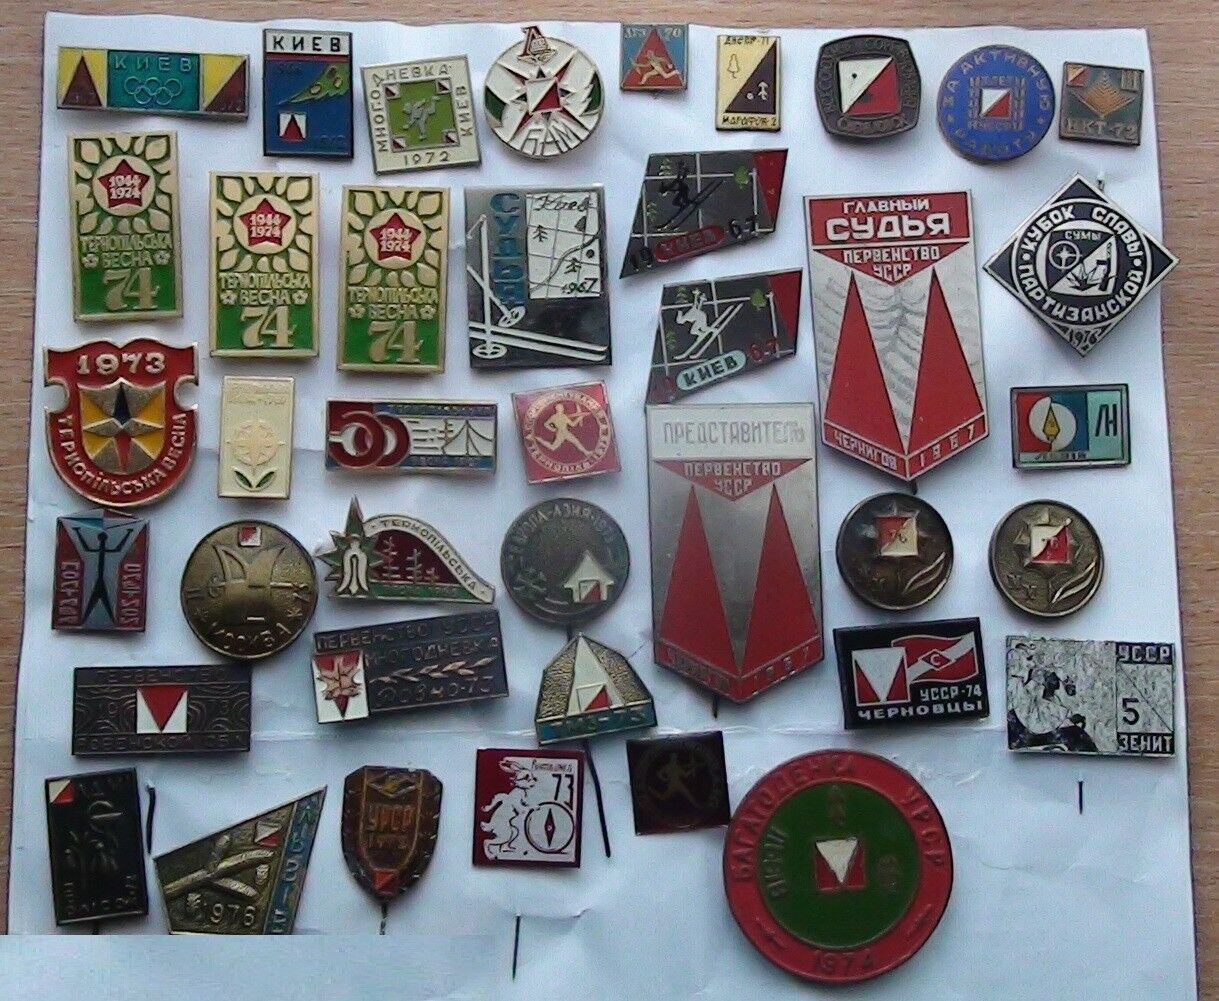 Une grande collection de broches de course d'orientation